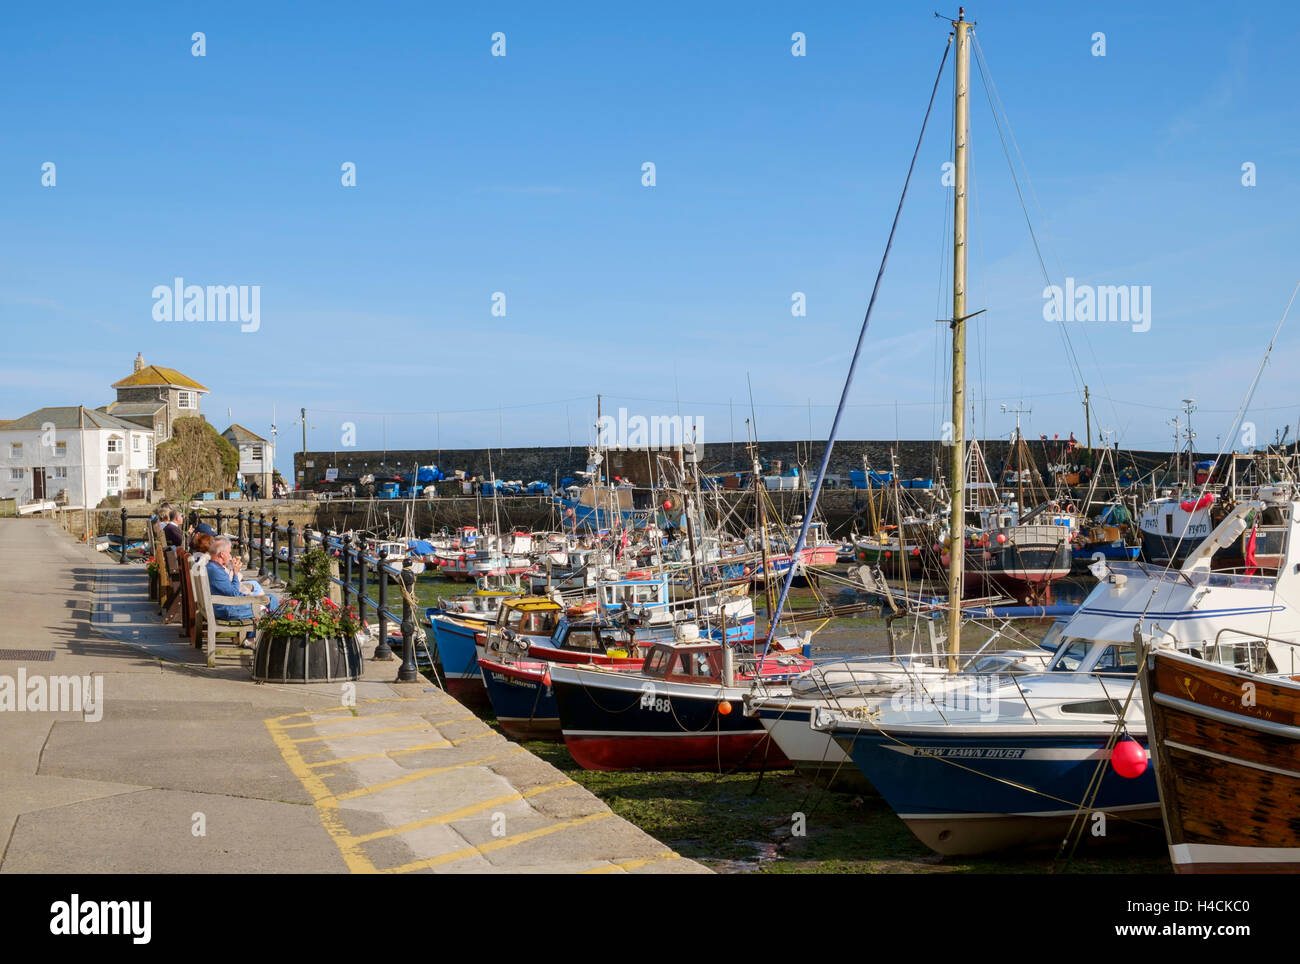 Tourists on the quayside at Mevagissey harbour & fishing port, Cornwall, England, UK - Stock Image